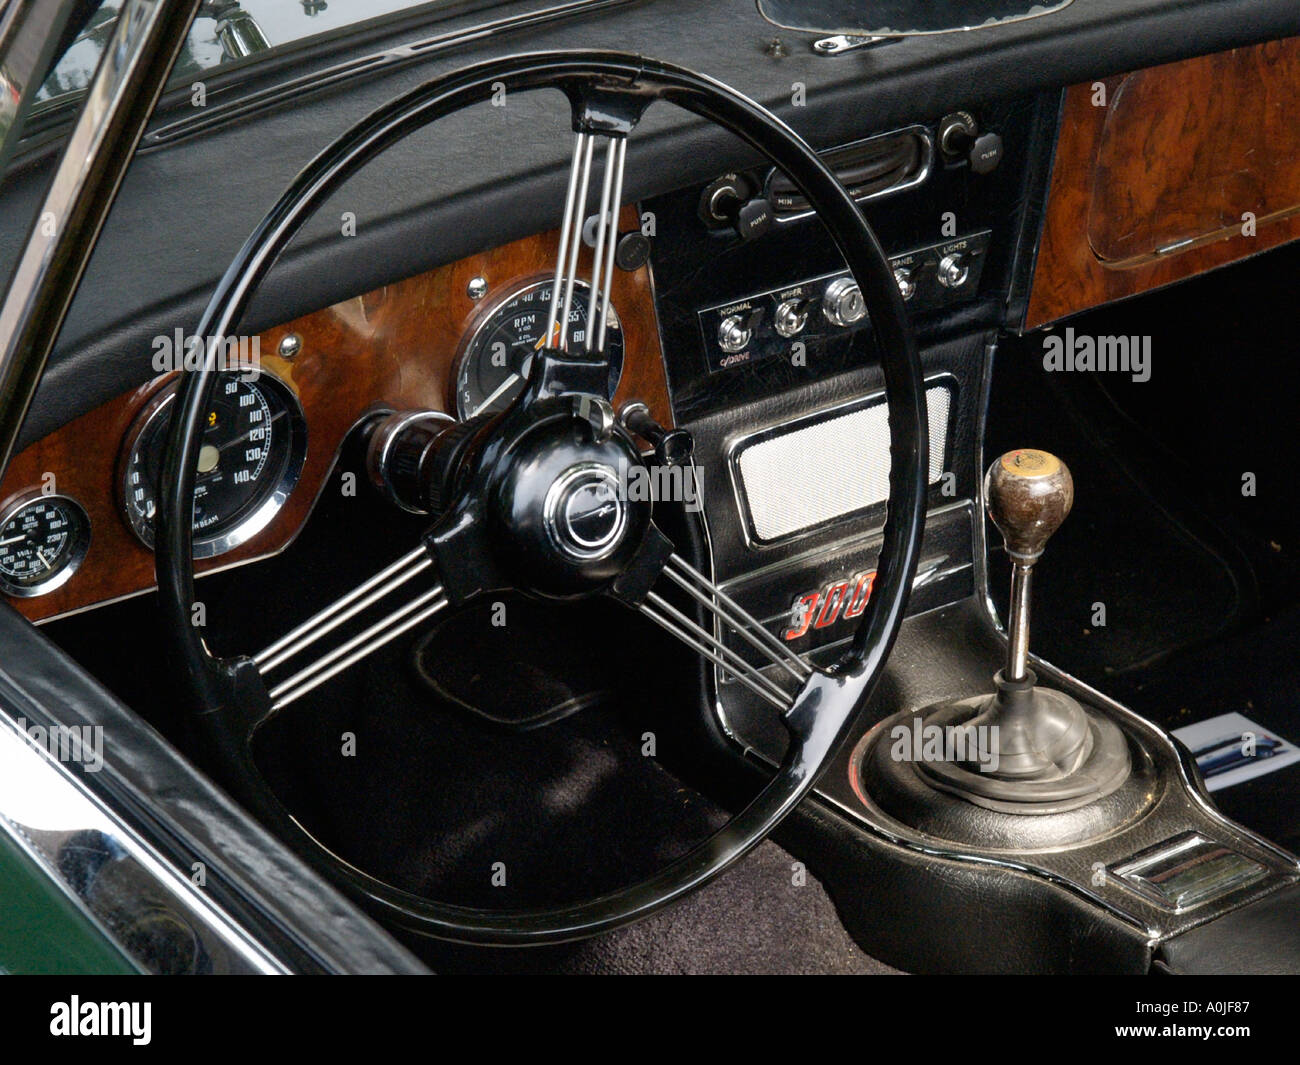 Interior Of An Austin Healey 3000 Mk3 Classic Sports Car With Sprung  Steering Wheel And Wooden Facia